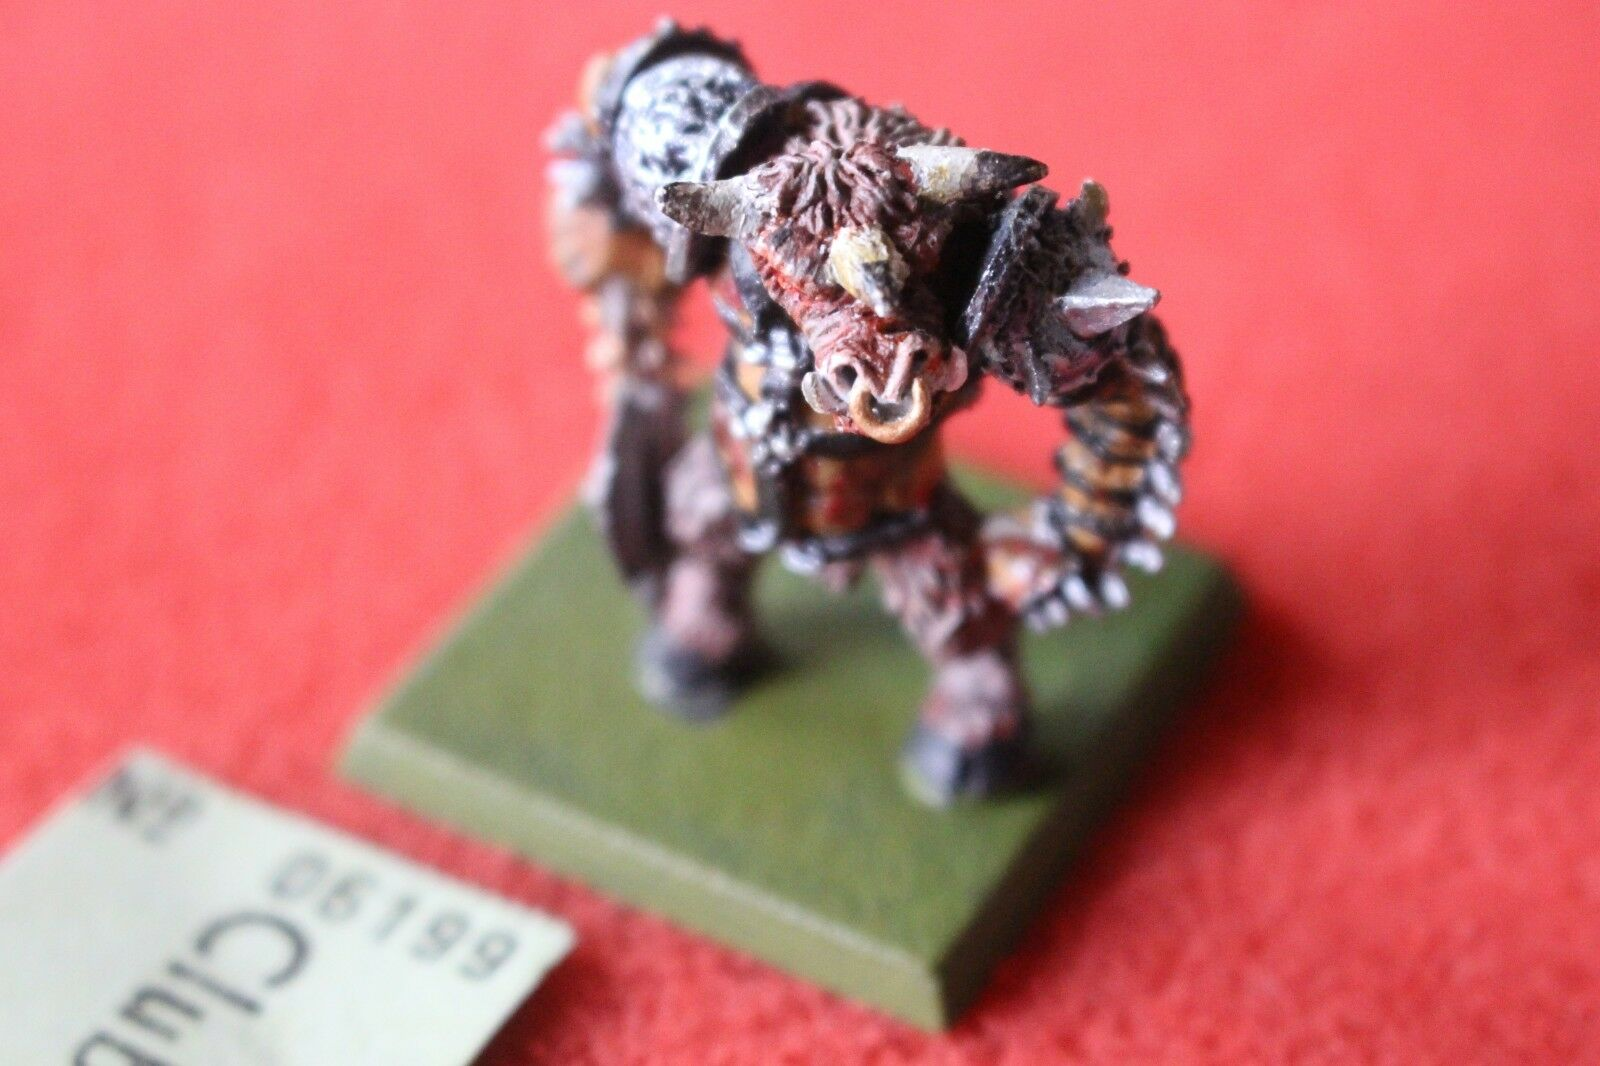 Games Workshop CITTADELLA C34 MINOTAURO SIGNORI Lord OX Roar Caos CHAMPION MACELLAZIONE